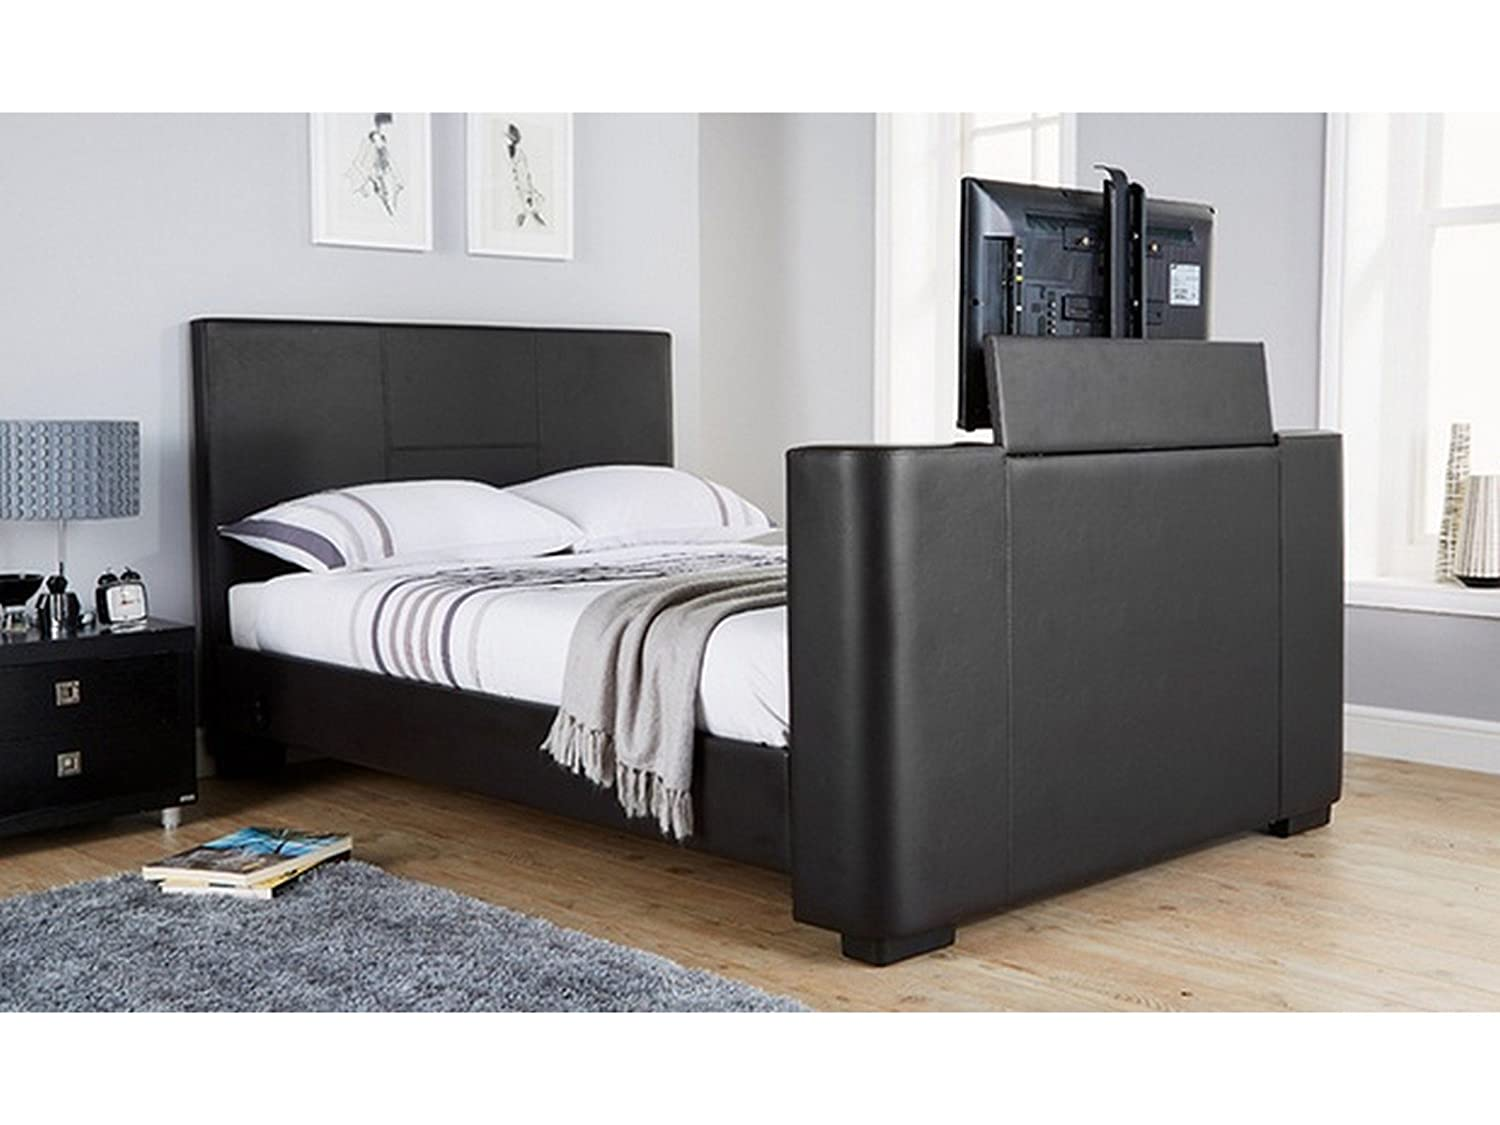 Super king size bed with tv - Newark 5ft King Size Faux Leather Electric Tv Bed Black